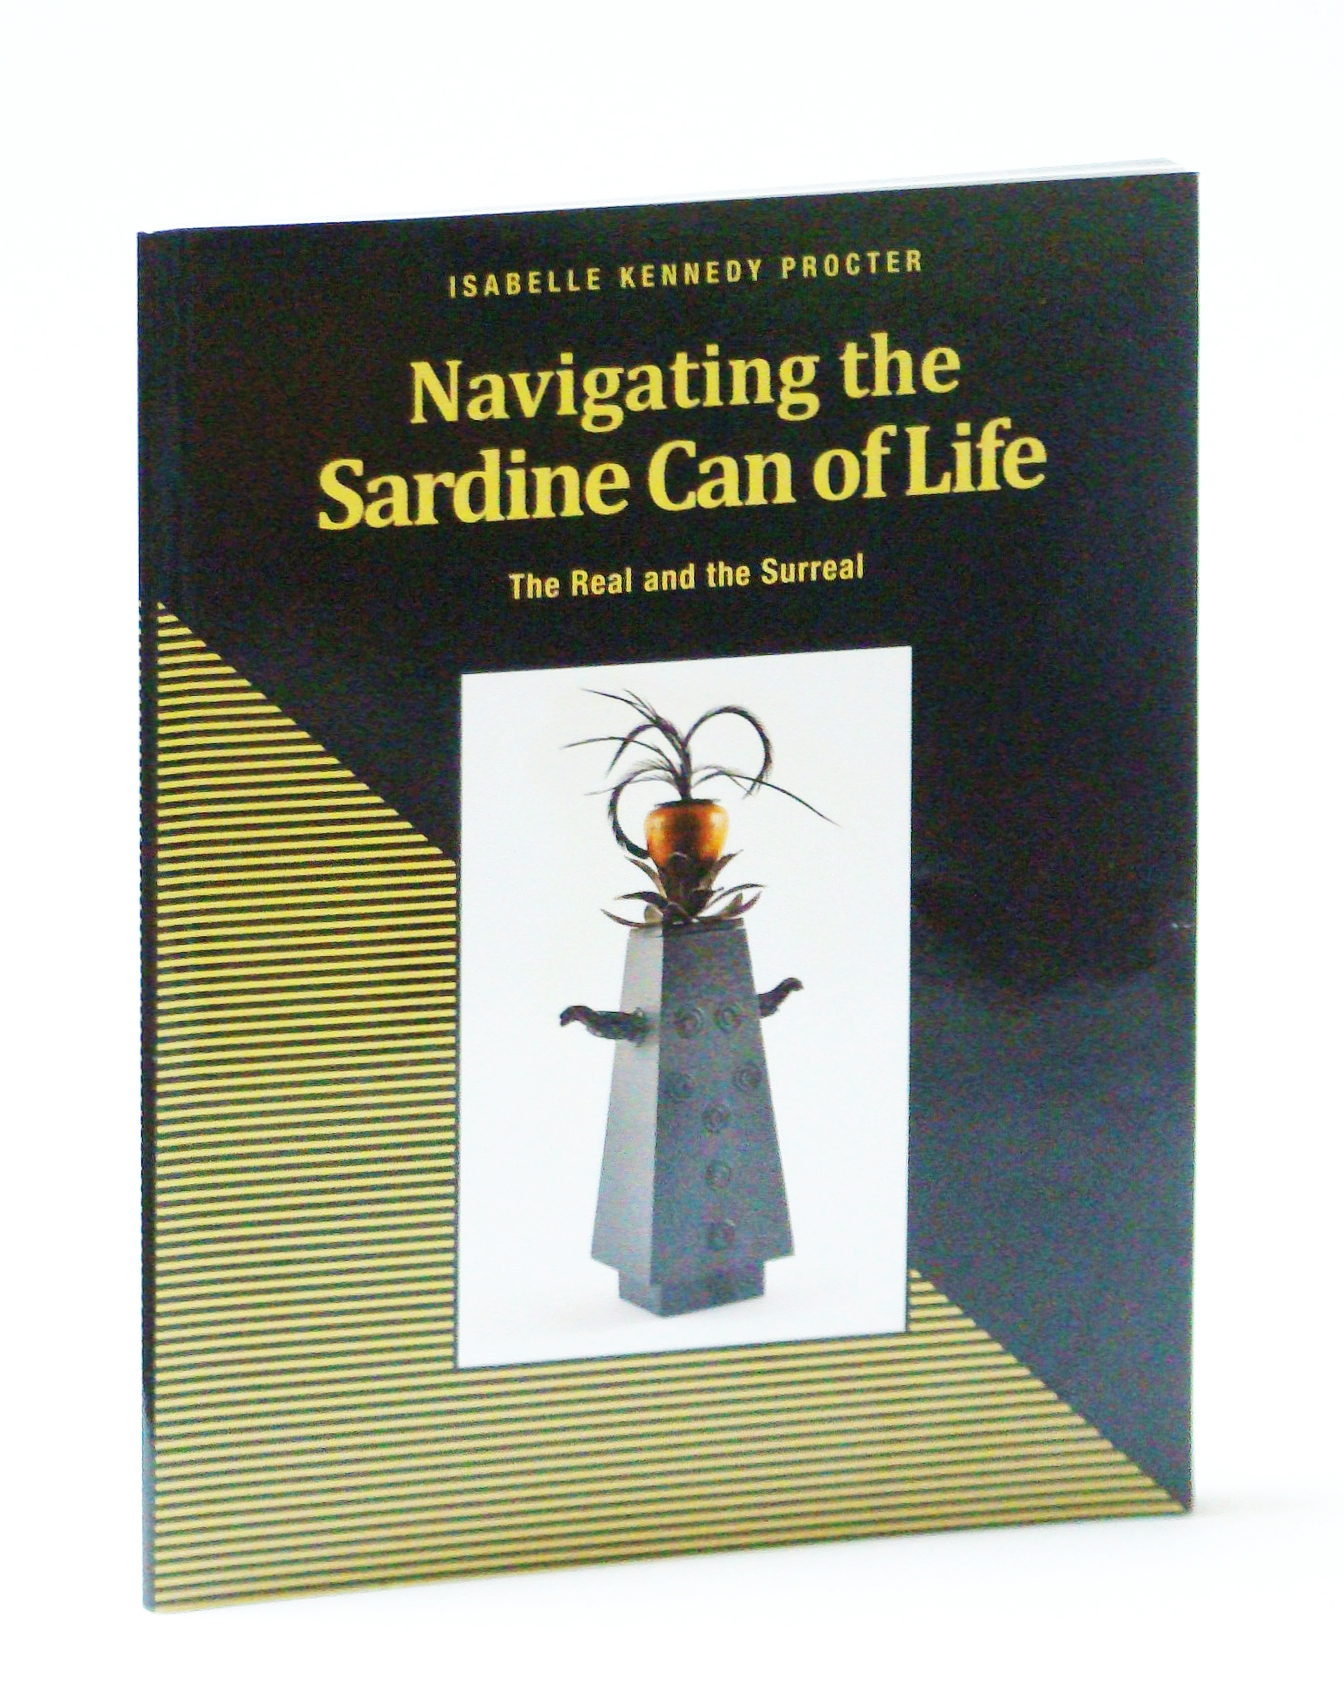 Image for Navigating the Sardine Can of Life: The Real and the Surreal